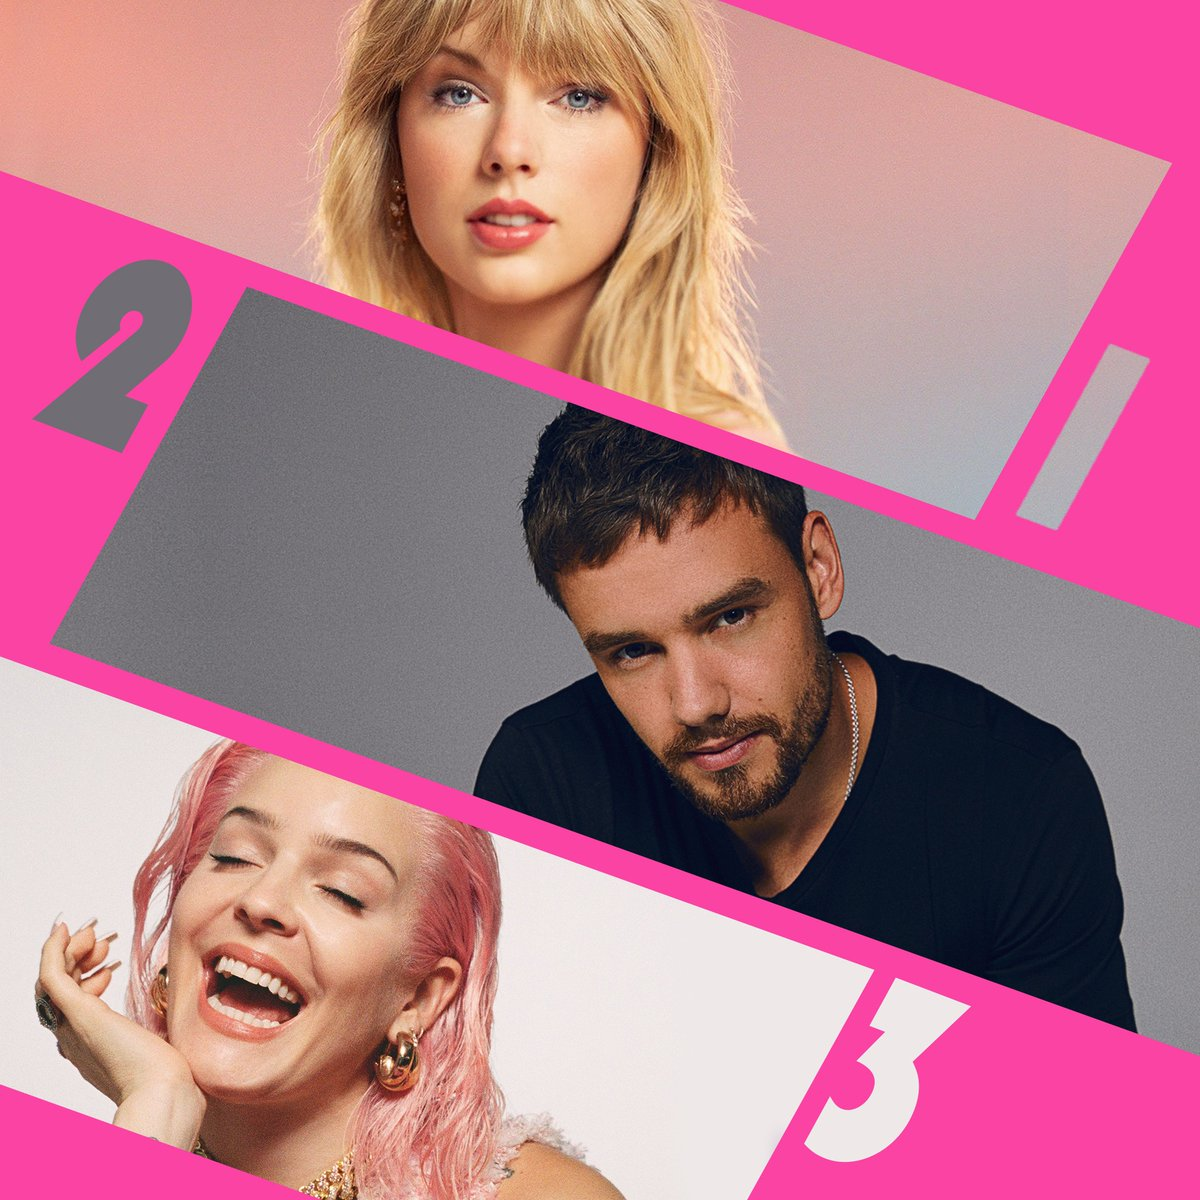 Here's Monday's #RDTop3!  1. @TaylorSwift13 - #SoonYoullGetBetter (f. @DixieChicks) 2. @Alesso - #Midnight (f. @LiamPayne) 3. @AnneMarie - #Her<br>http://pic.twitter.com/GgXz76CRlt